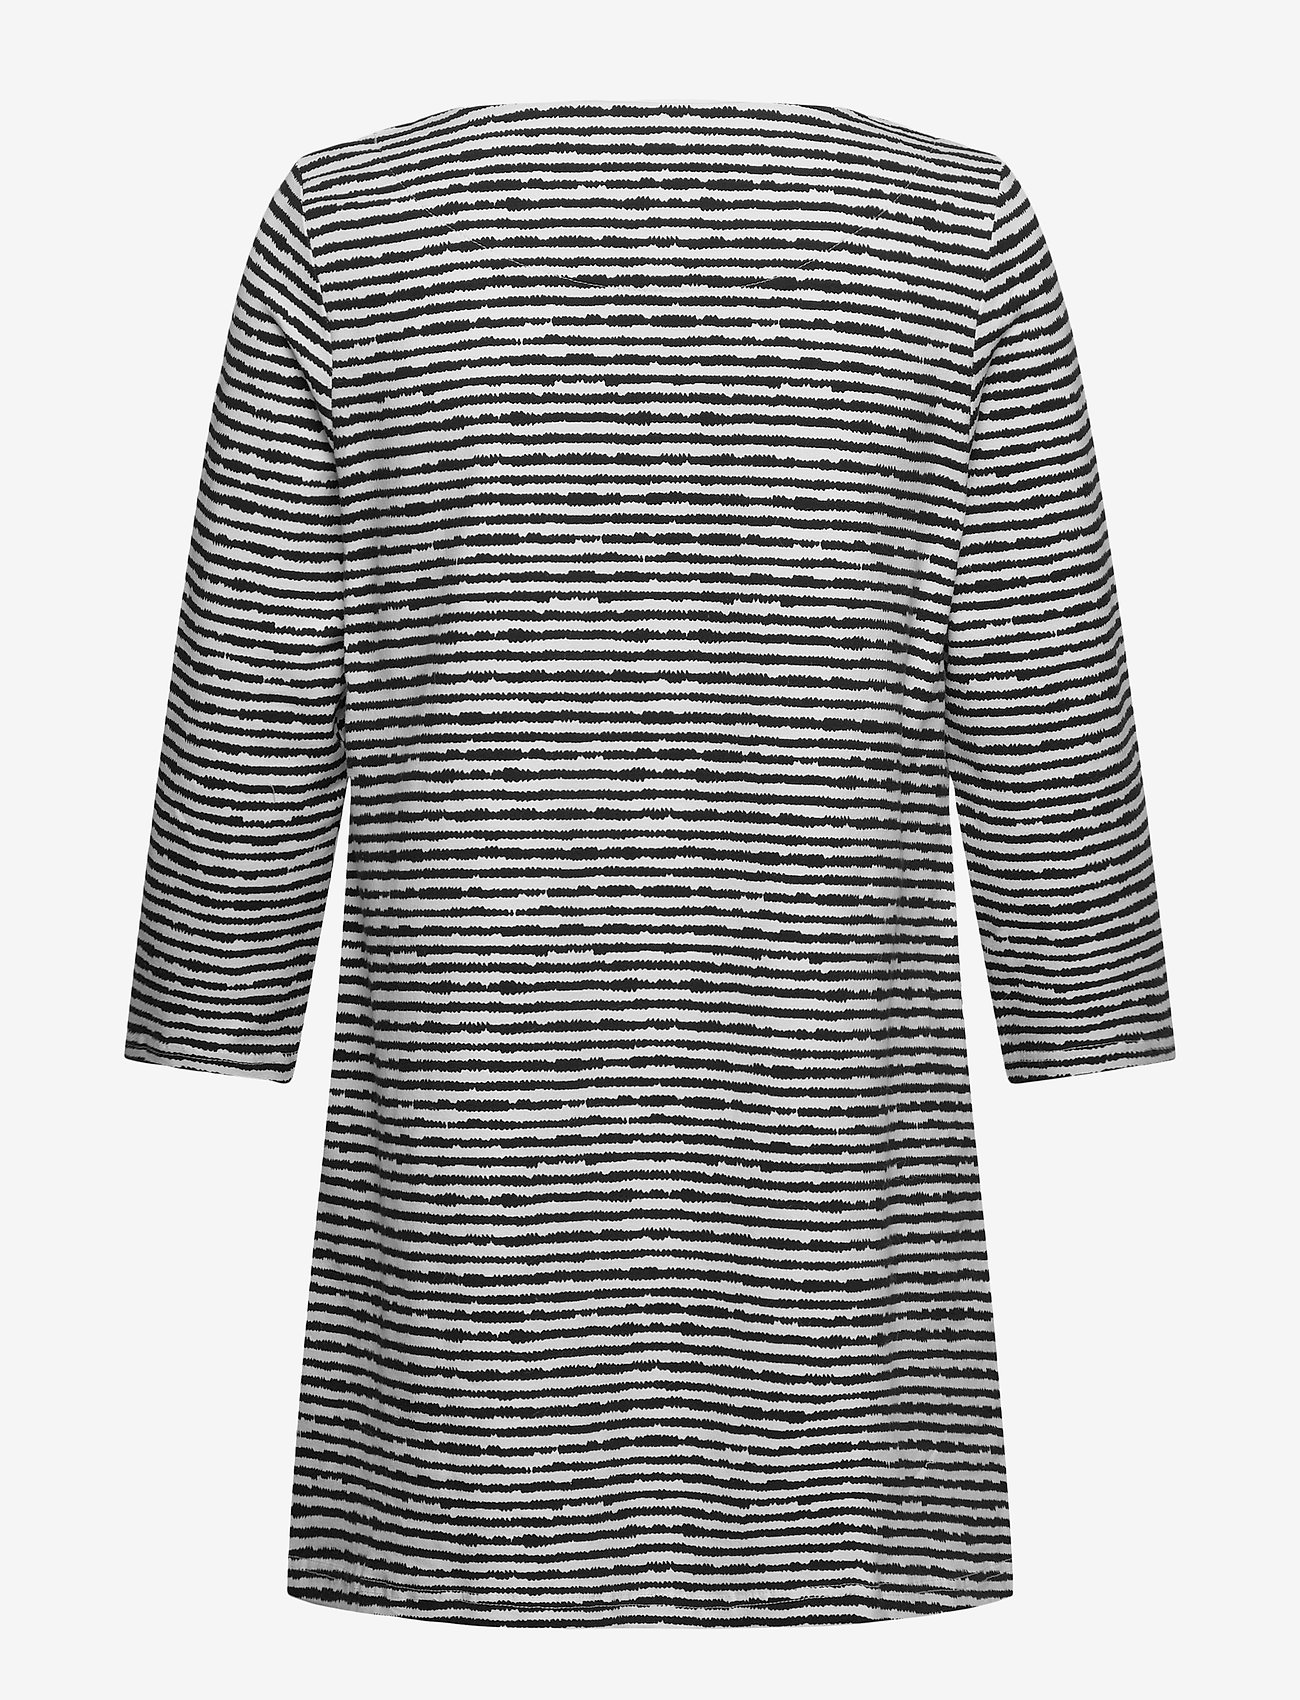 Nanso - Ladies tunic, Aprilli - tunieken - black and white - 1